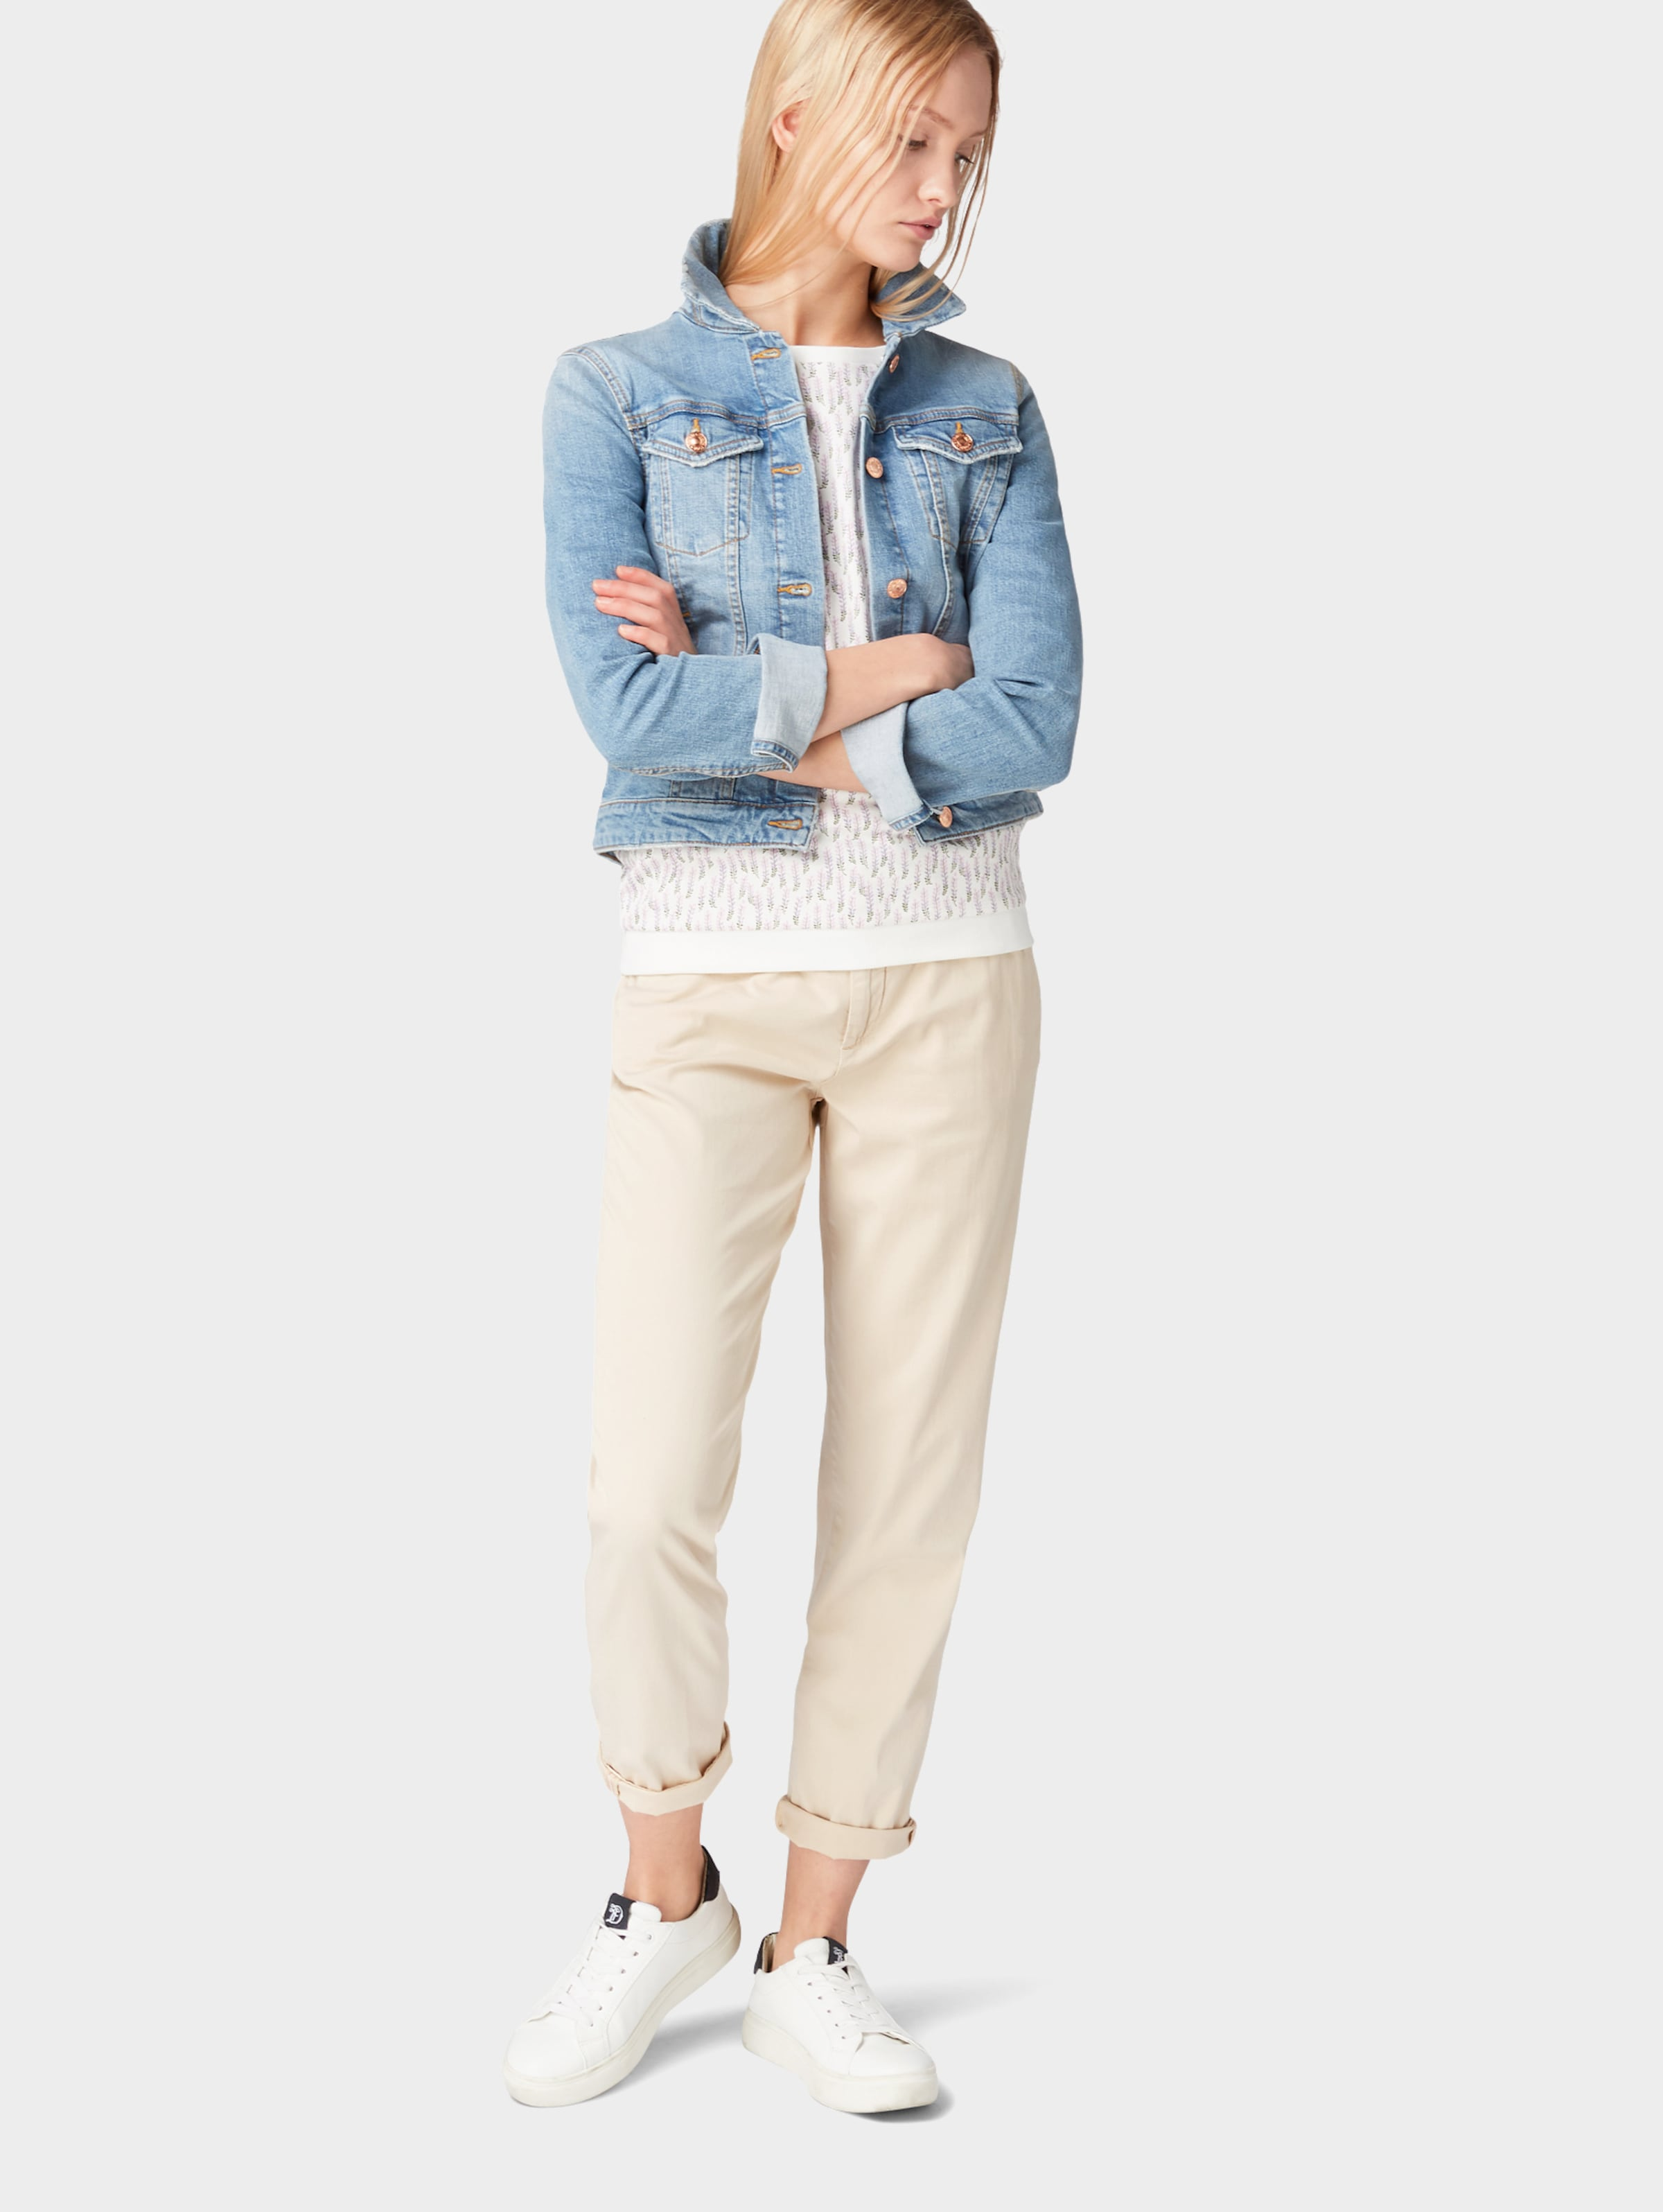 Denim In Tom RosaOffwhite Pullover Tailor J13KTlFc